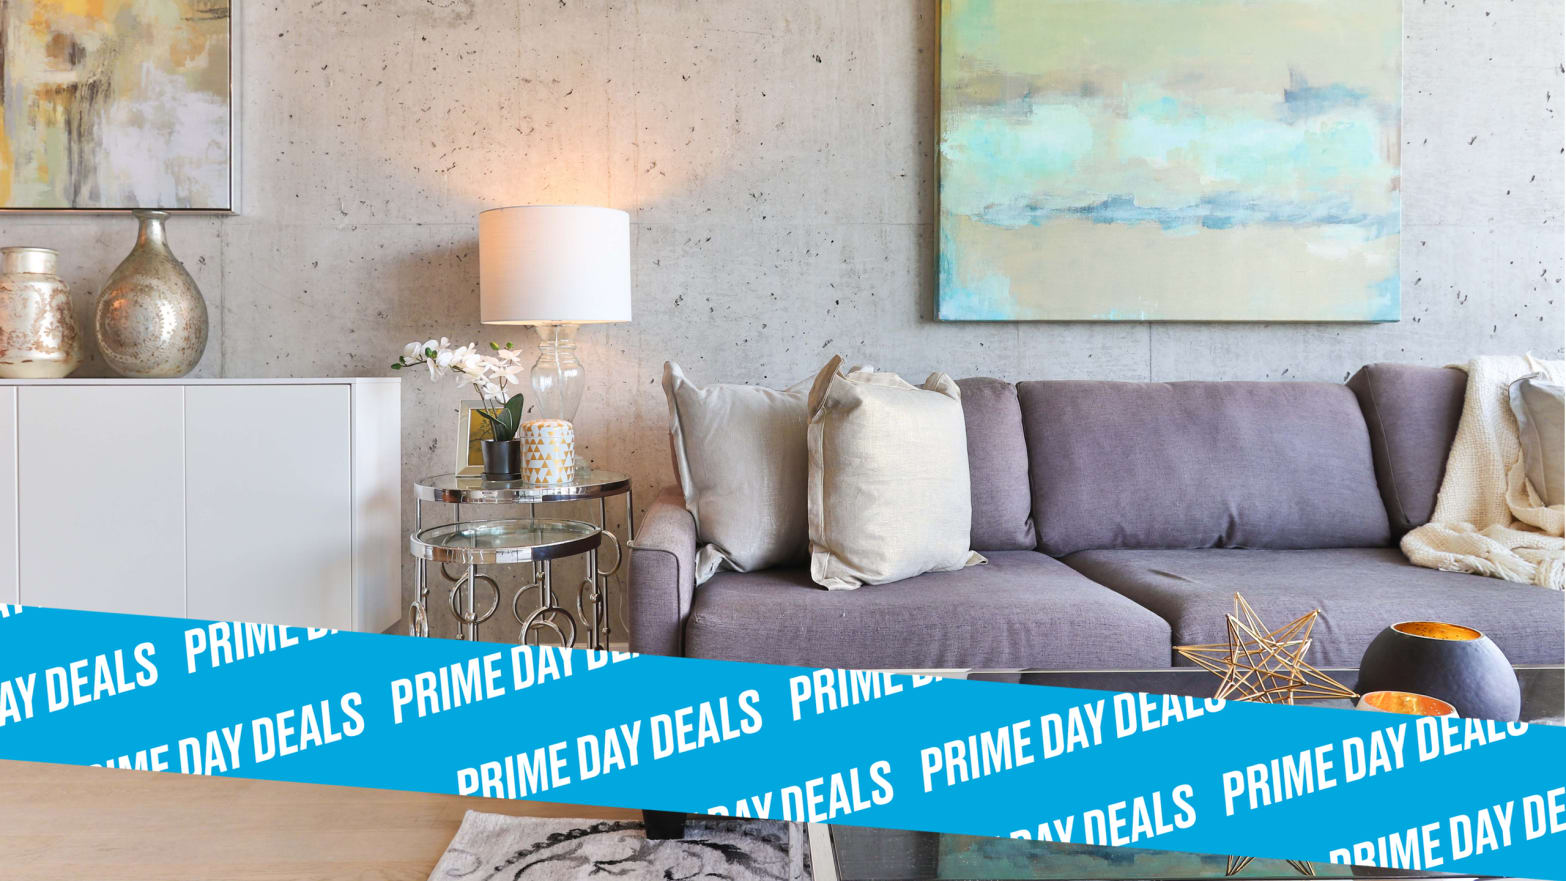 Amazon Prime Day: Home Deals on Amazon